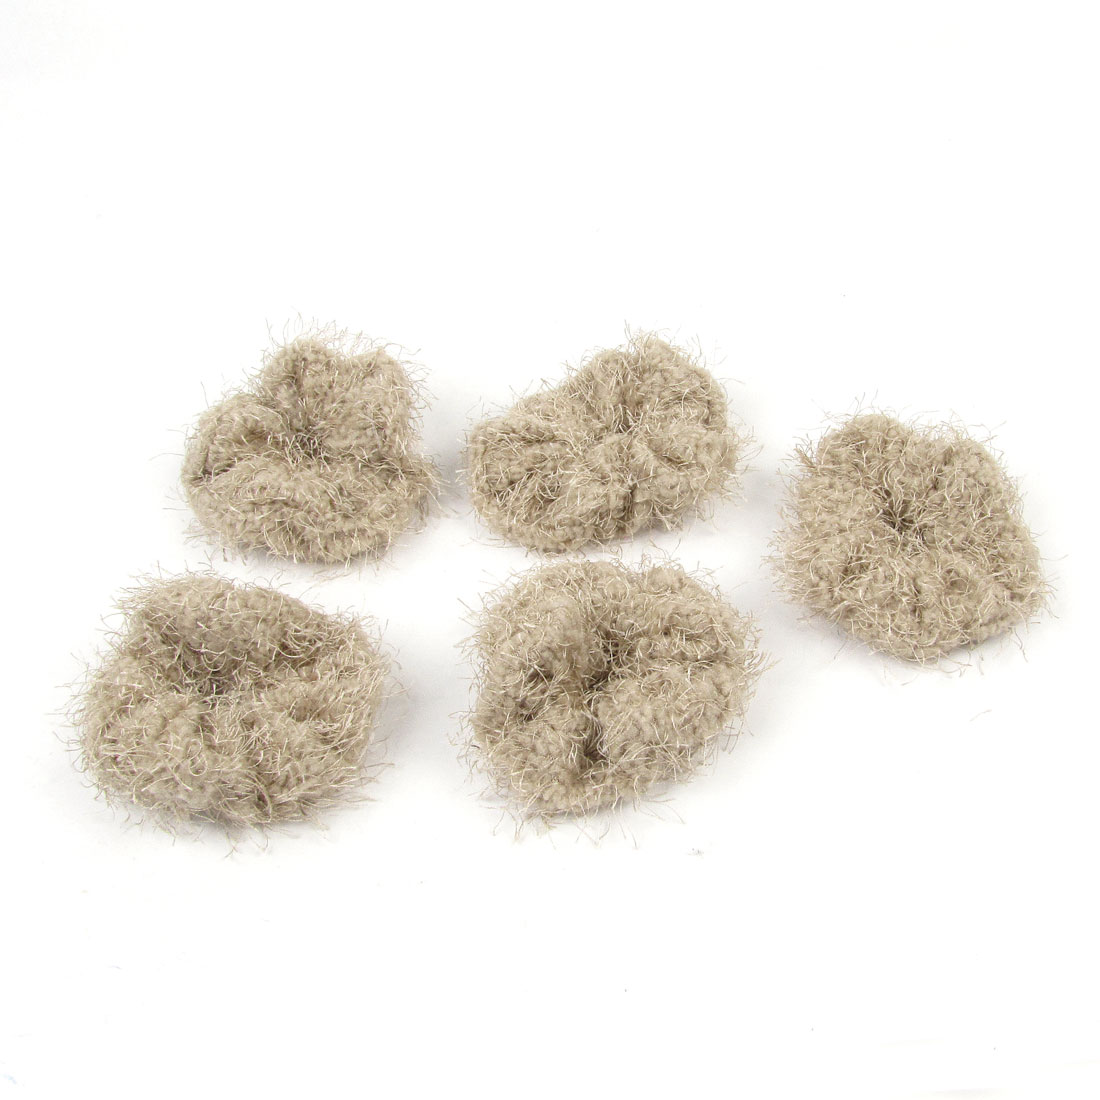 5 Pcs Cotten Blends Stretch Hair Band Ponytail Holder Khaki for Woman Lady